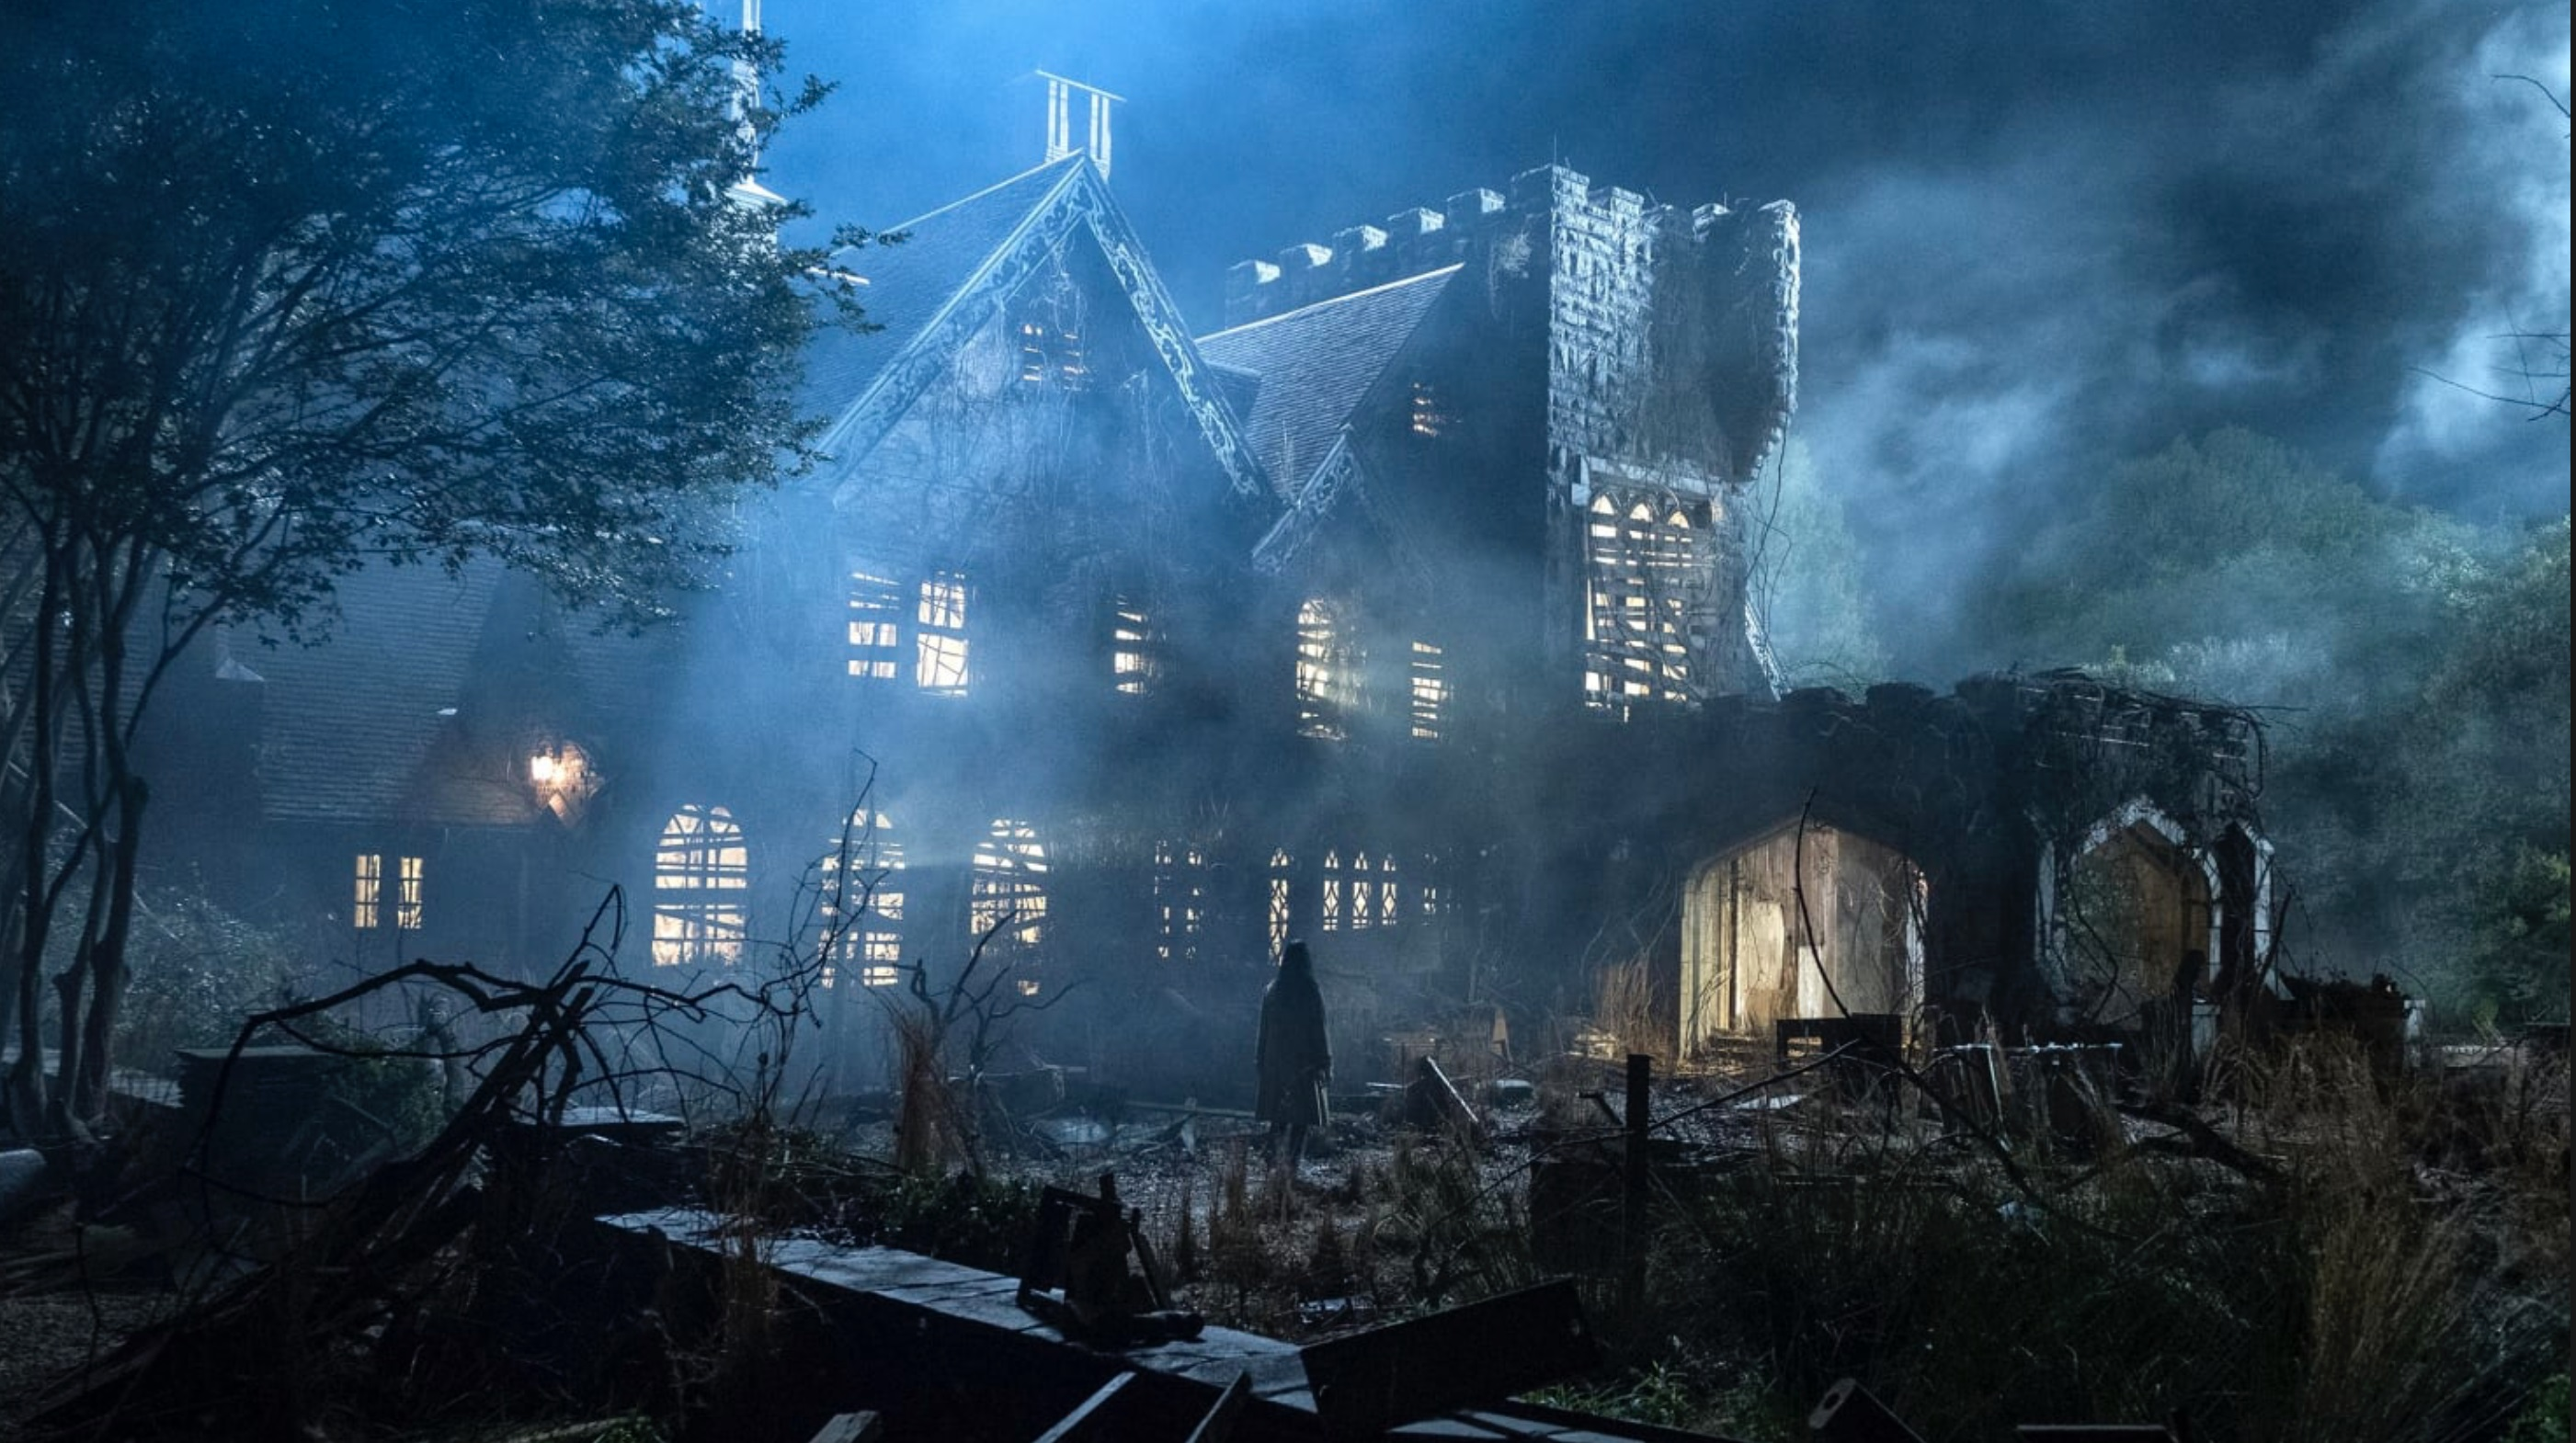 Hill House in The Haunting of Hill House (2018)